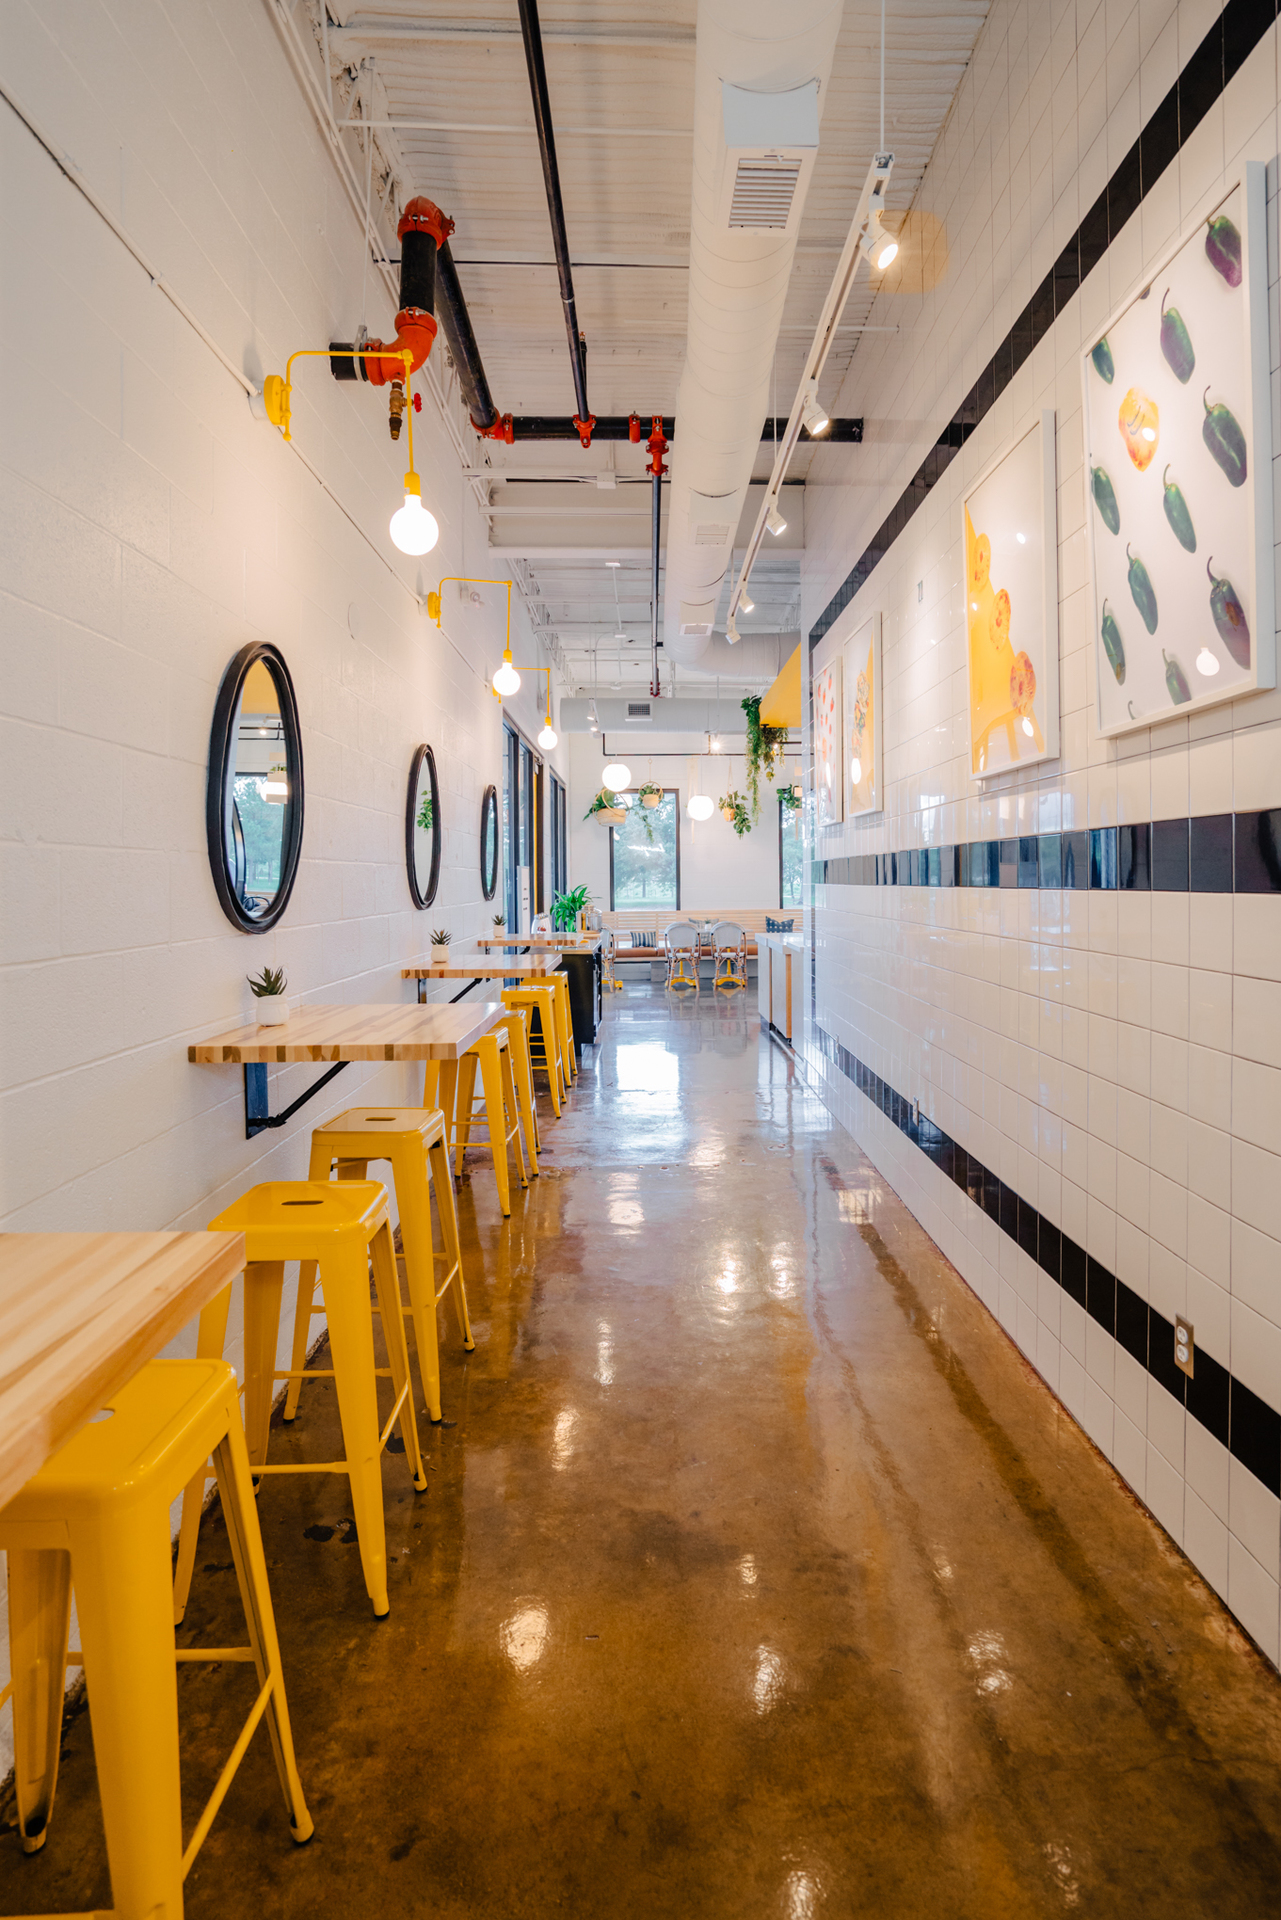 The yellow color accents and bright finishes expose guests to the energetic atmosphere at EggHaus in Houston, TX, featuring the Downtown Swing Arm Sconce in buttery yellow by Barn Light Electric.